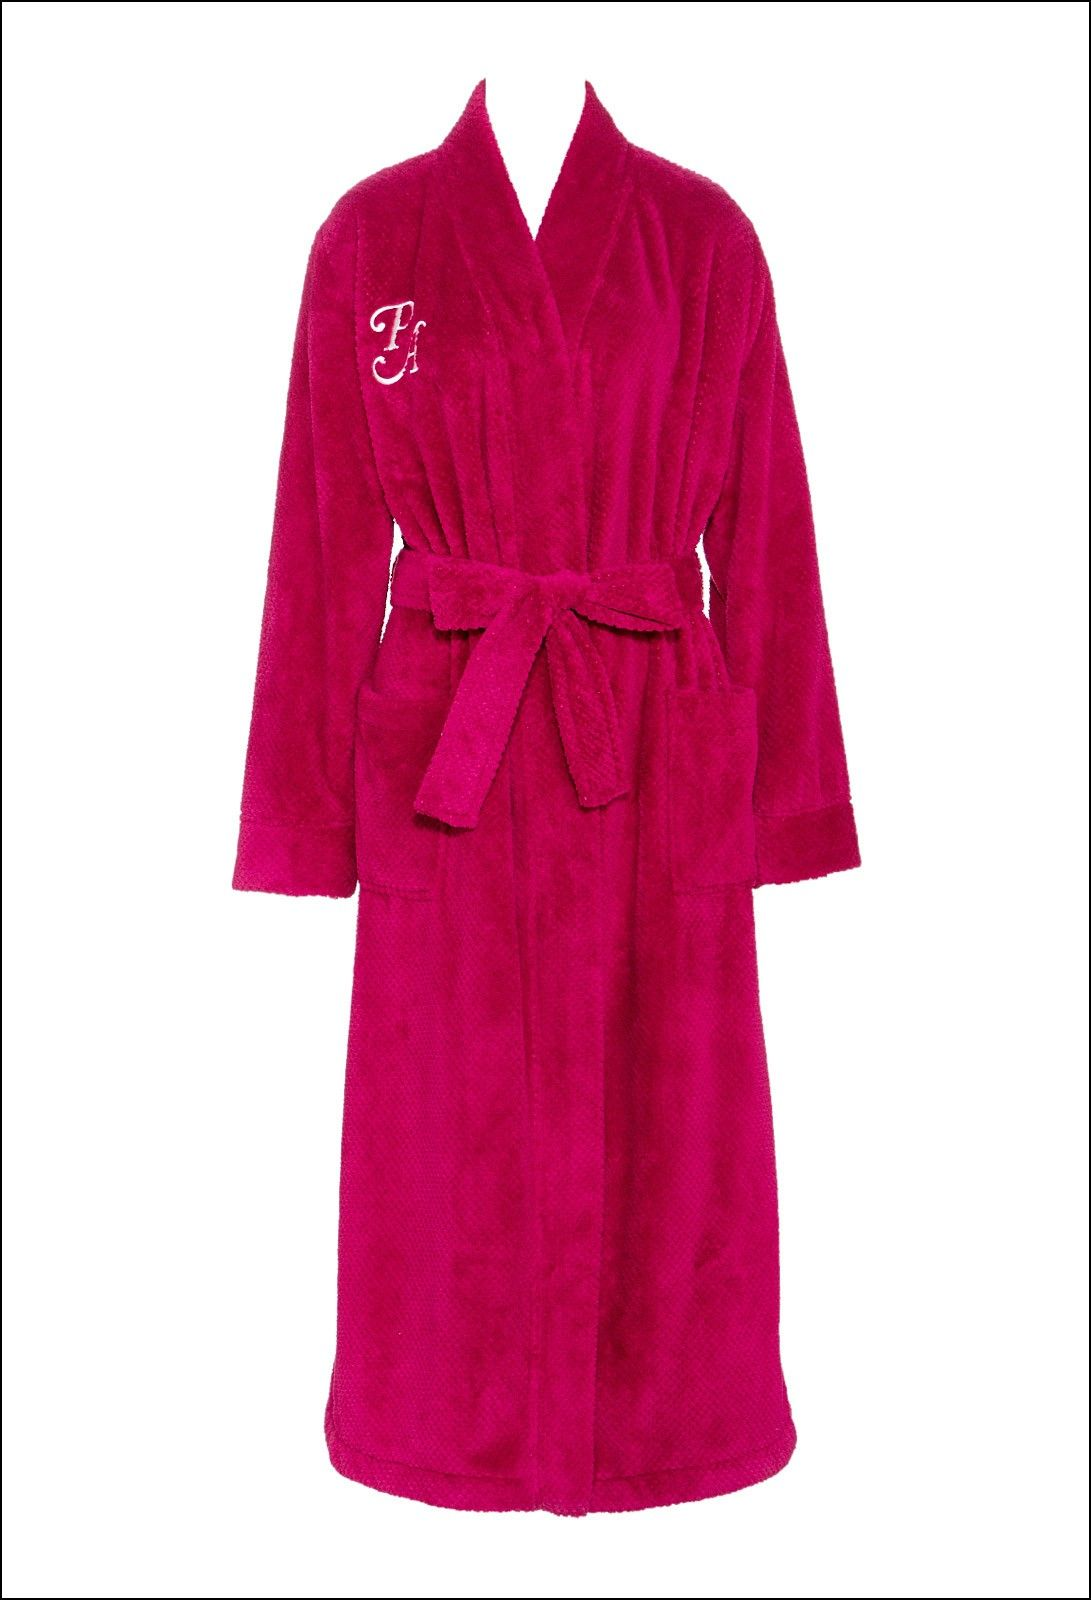 Peter alexander dressing gown dresses and gowns ideas pinterest